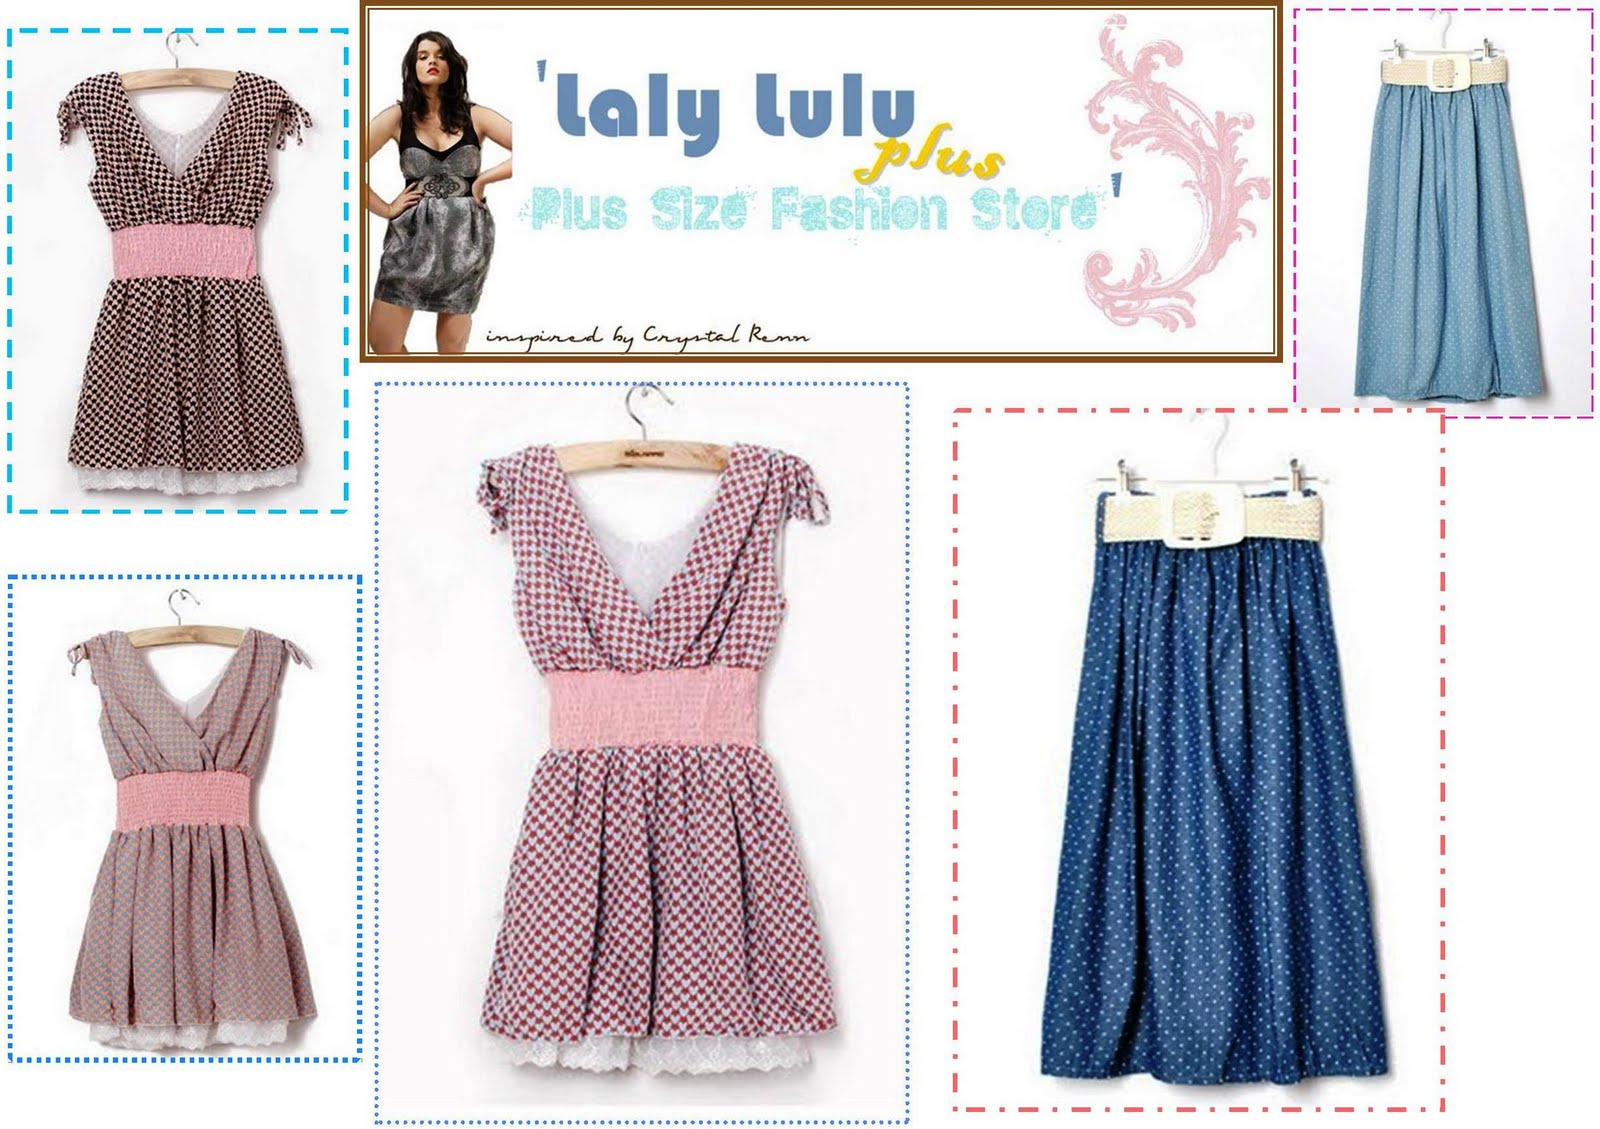 Laly lulu plus size fashion store sarawak online shops for Online stores like lulus